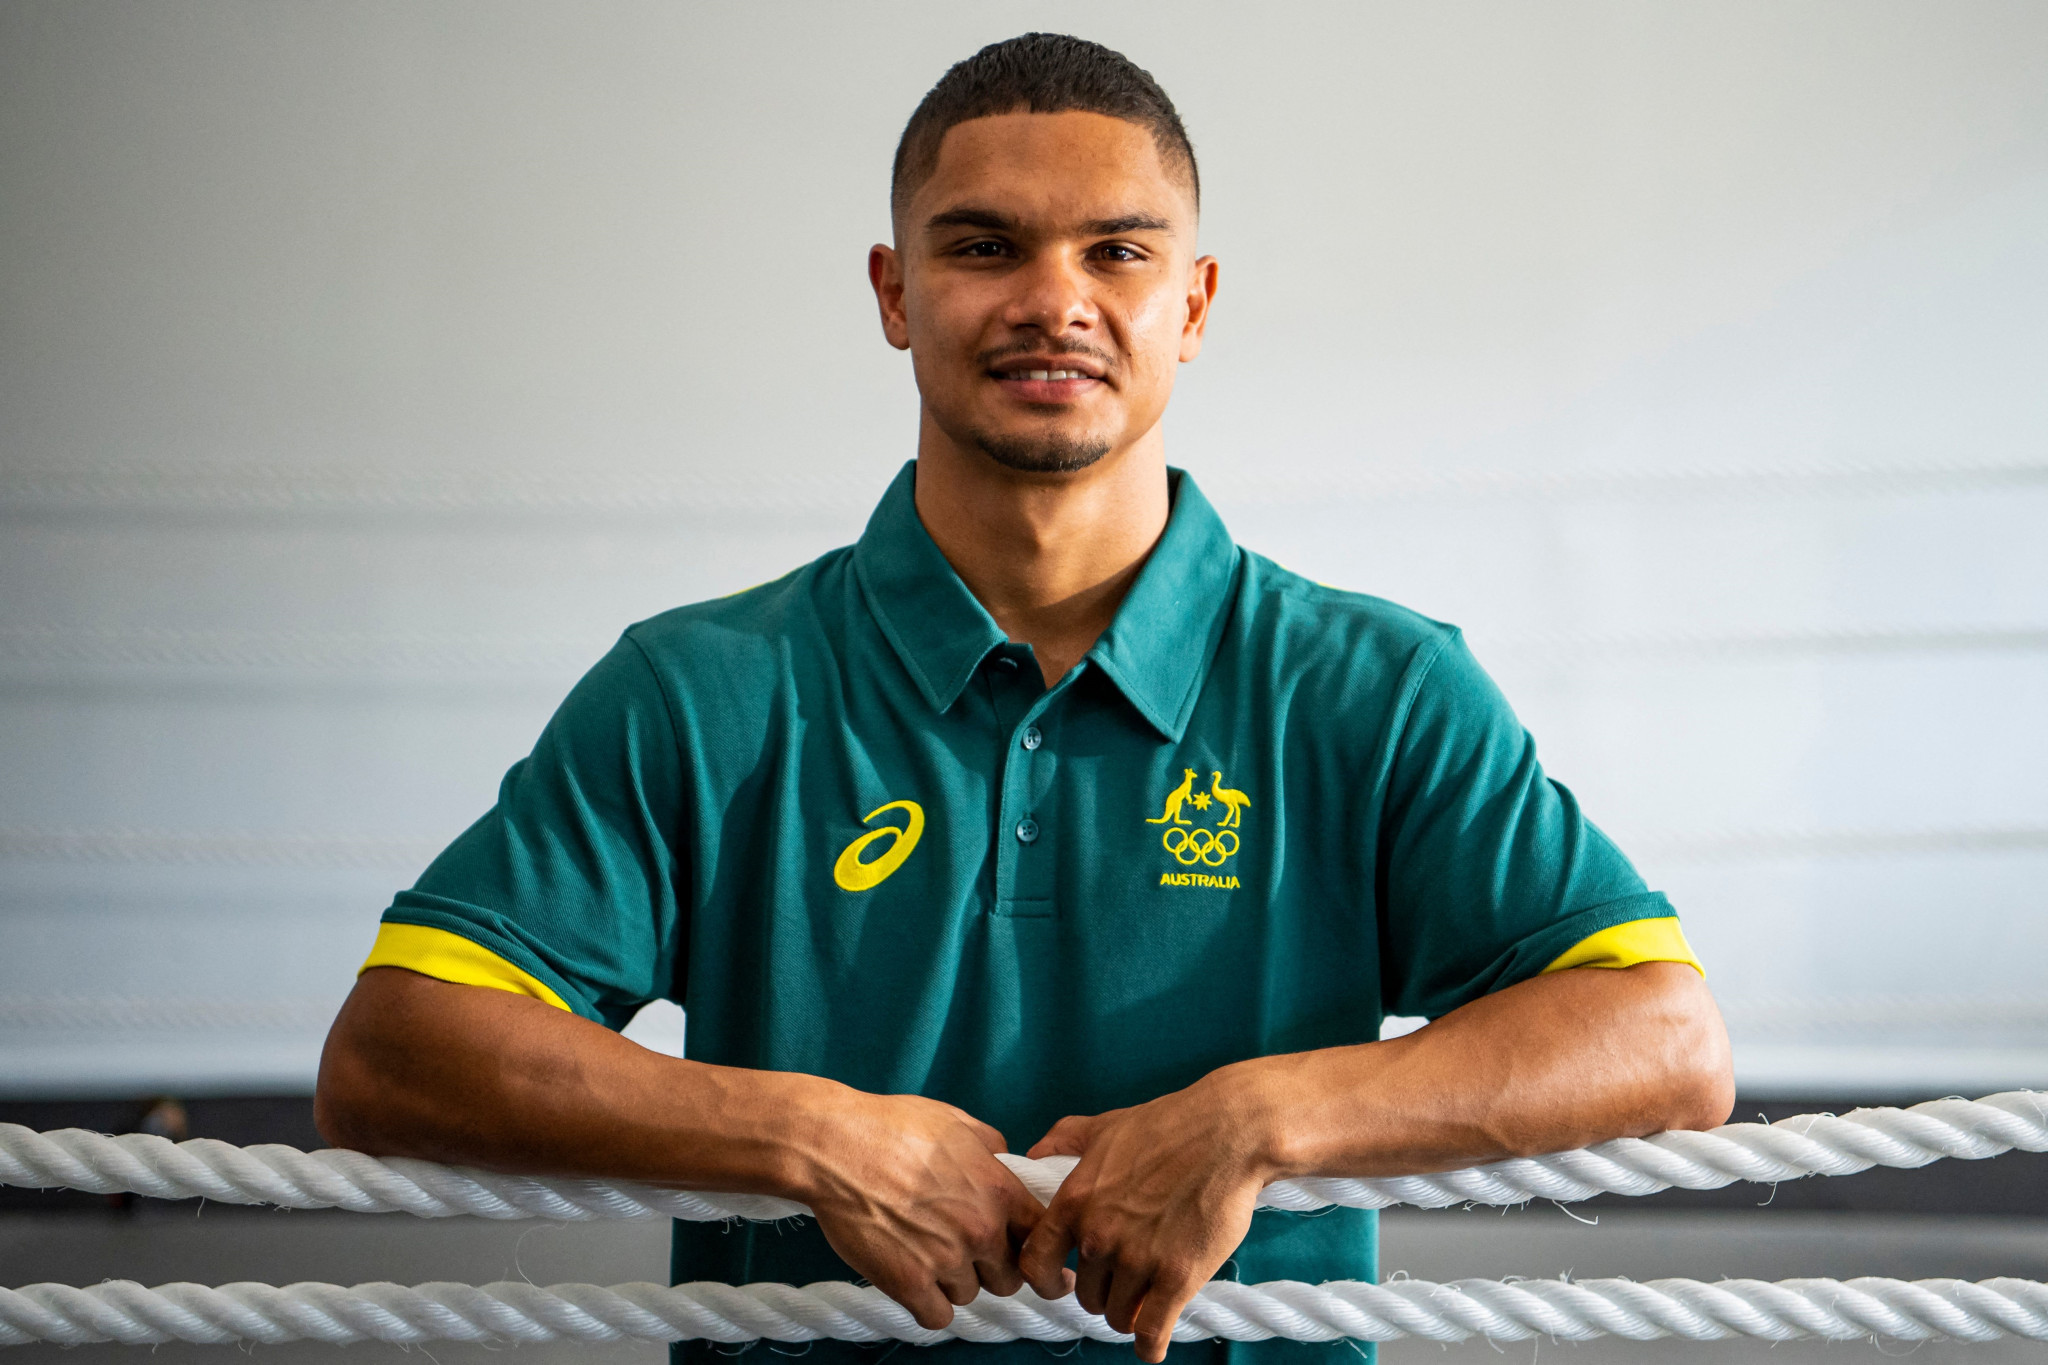 Boxer Winwood becomes first Indigenous athlete to join AOC Athletes' Commission